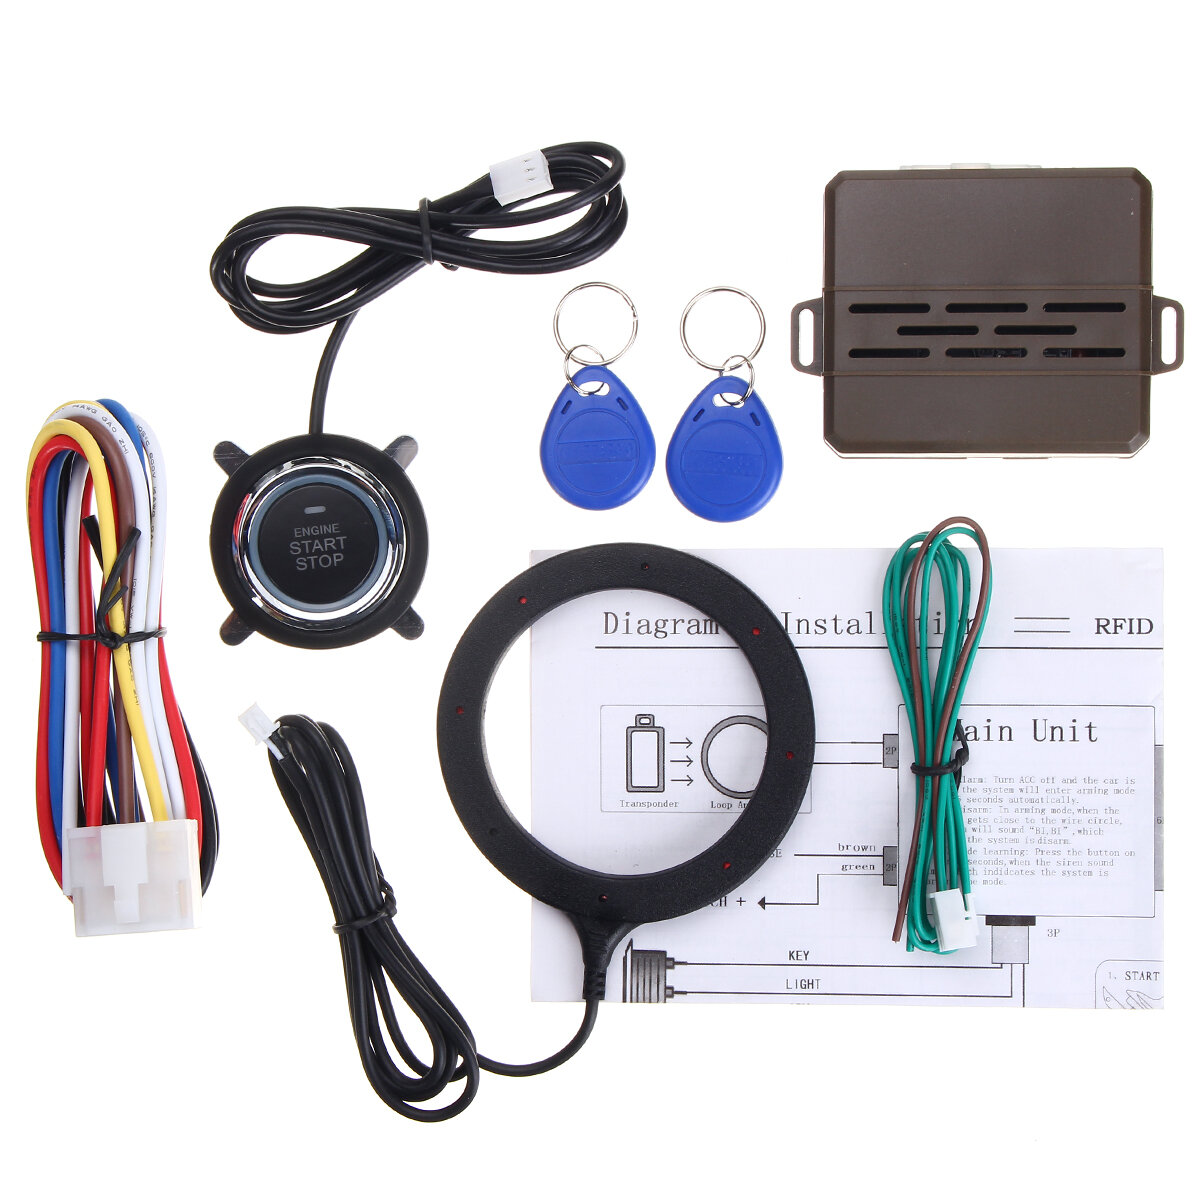 Engine Start Stop Keyless Entry System Pke Security Alarm